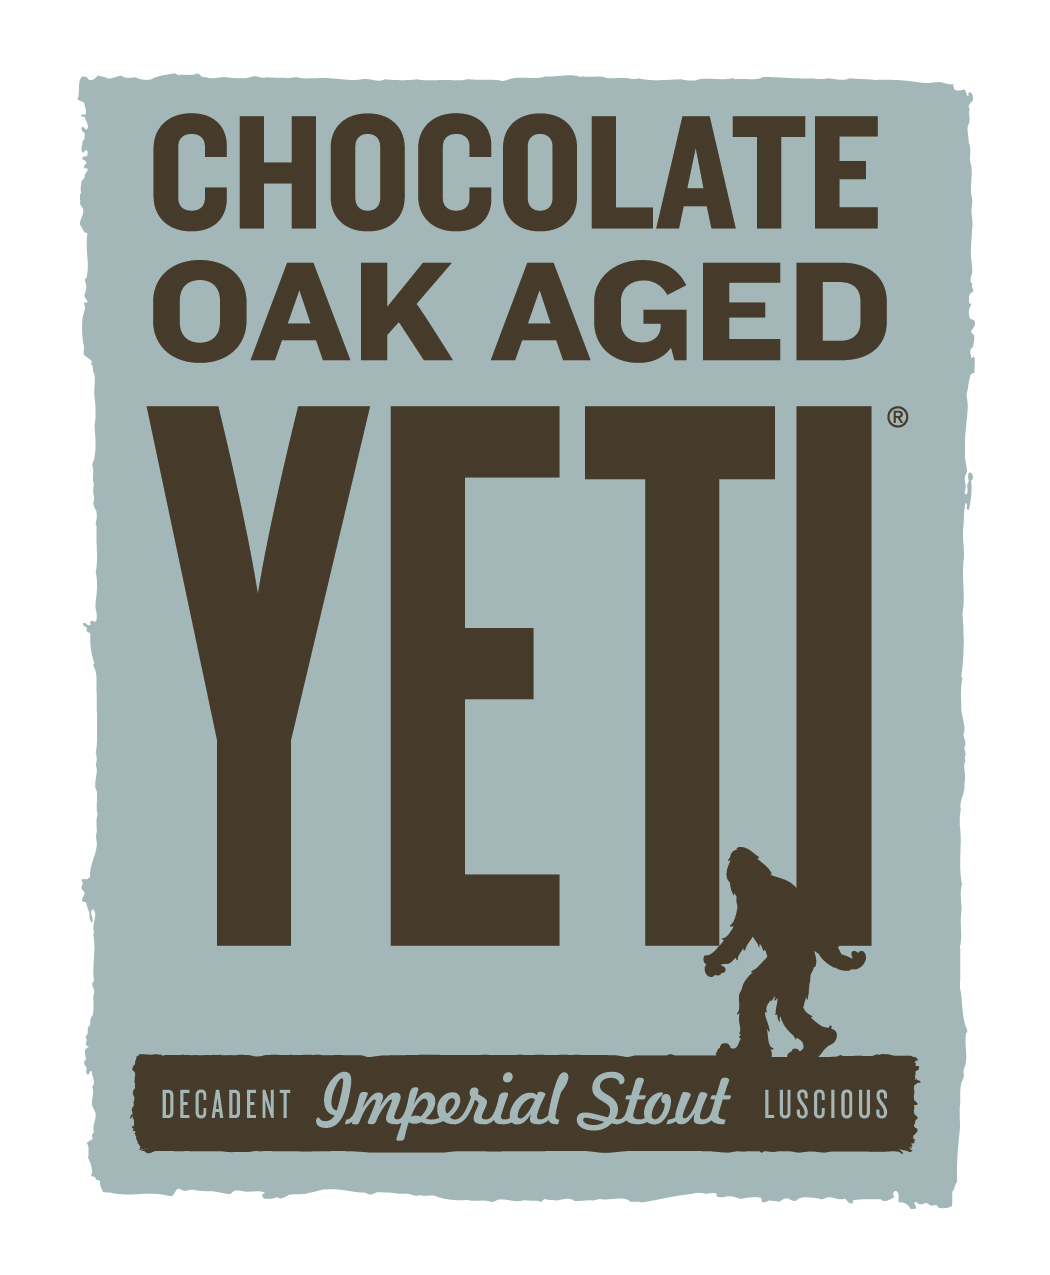 Chocolate Oak-Aged Yeti